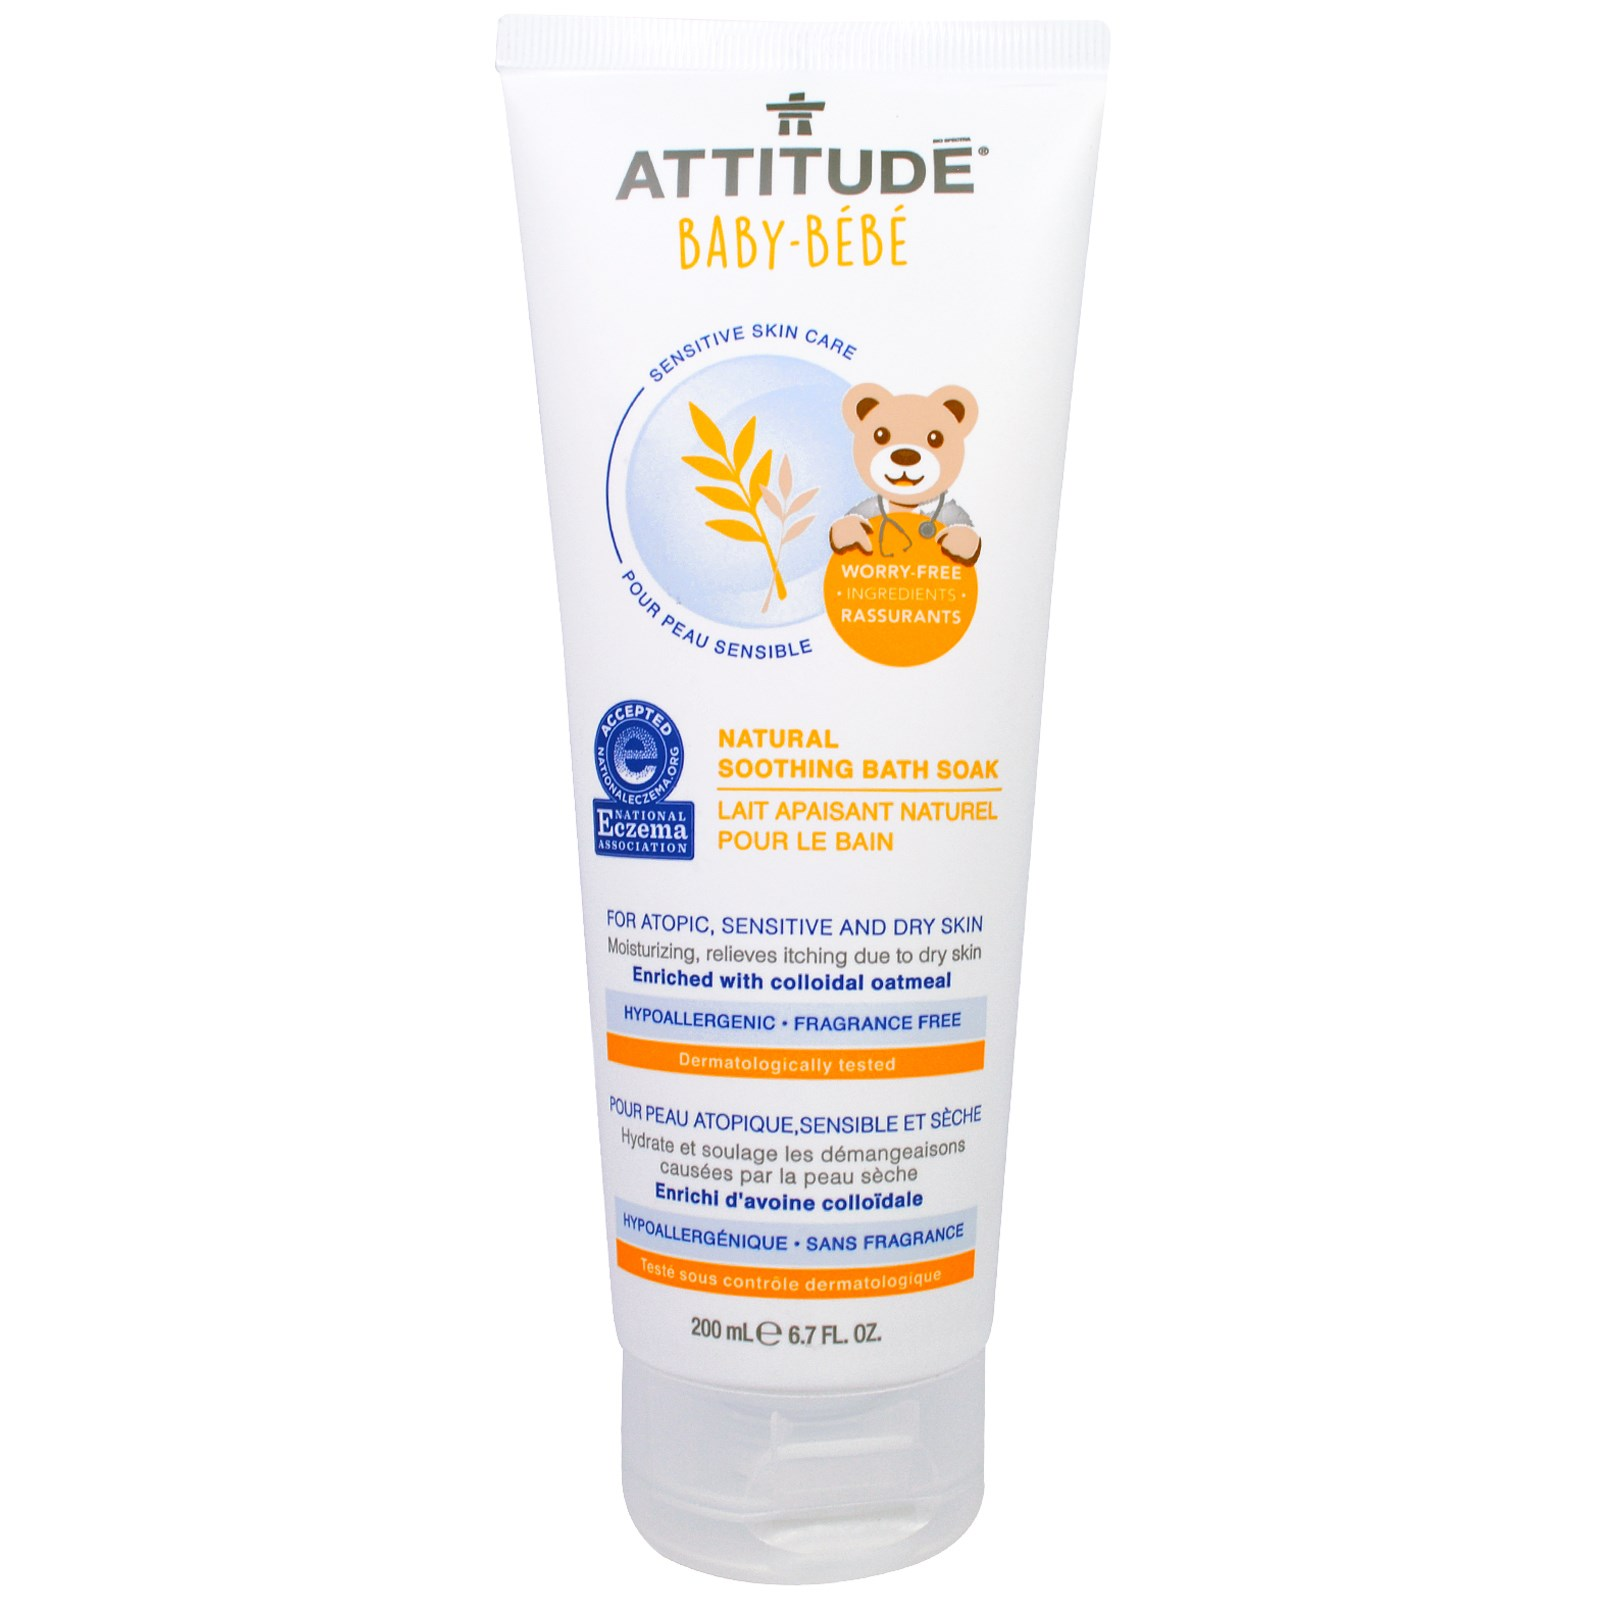 attitude b b adoucissant naturel pour le bain sans parfum 6 7 fl oz 200 ml. Black Bedroom Furniture Sets. Home Design Ideas